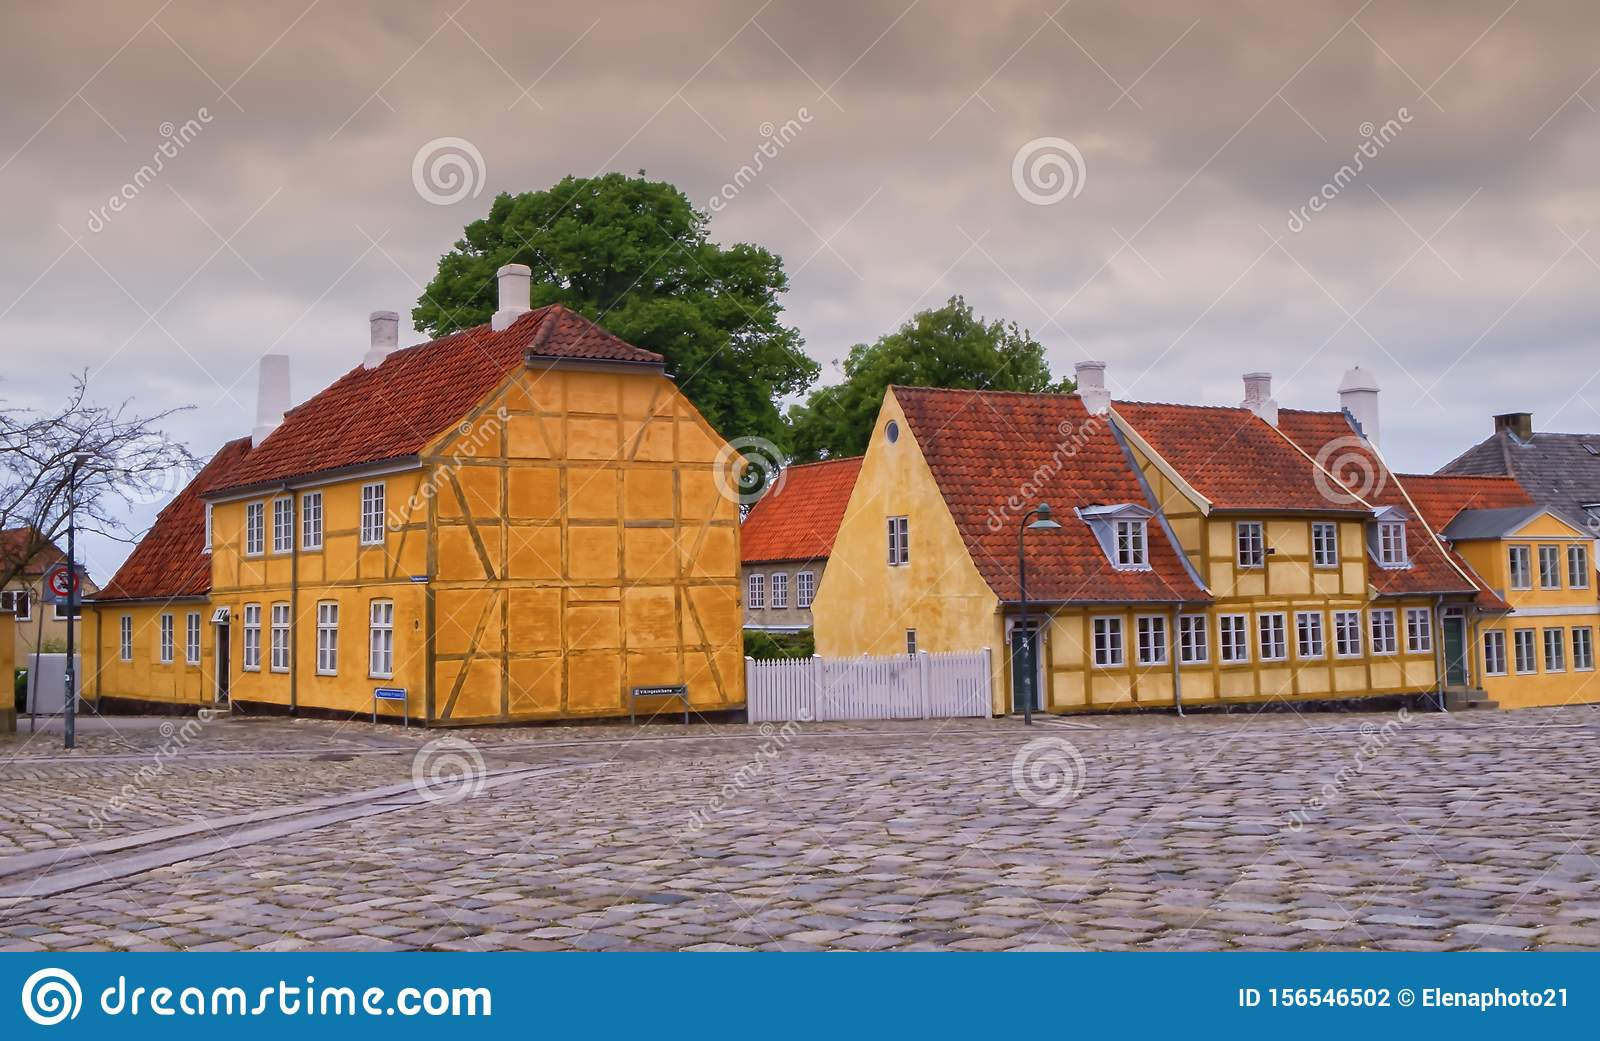 Historical colorful danish buildings in Roskilde, Denmark